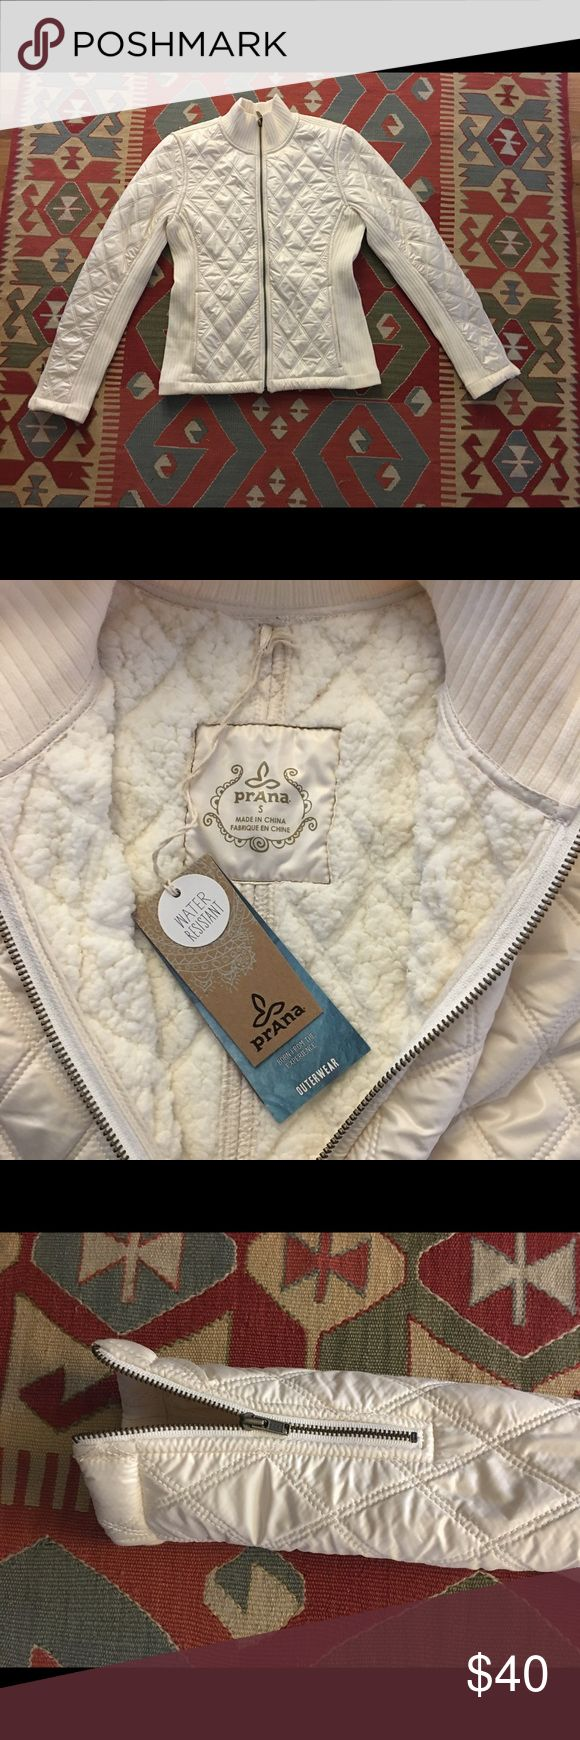 Prana coat Ivory prana water resistant coat. New with tags! Size small. Great moto style fit with zip sleeves. Prana Jackets & Coats